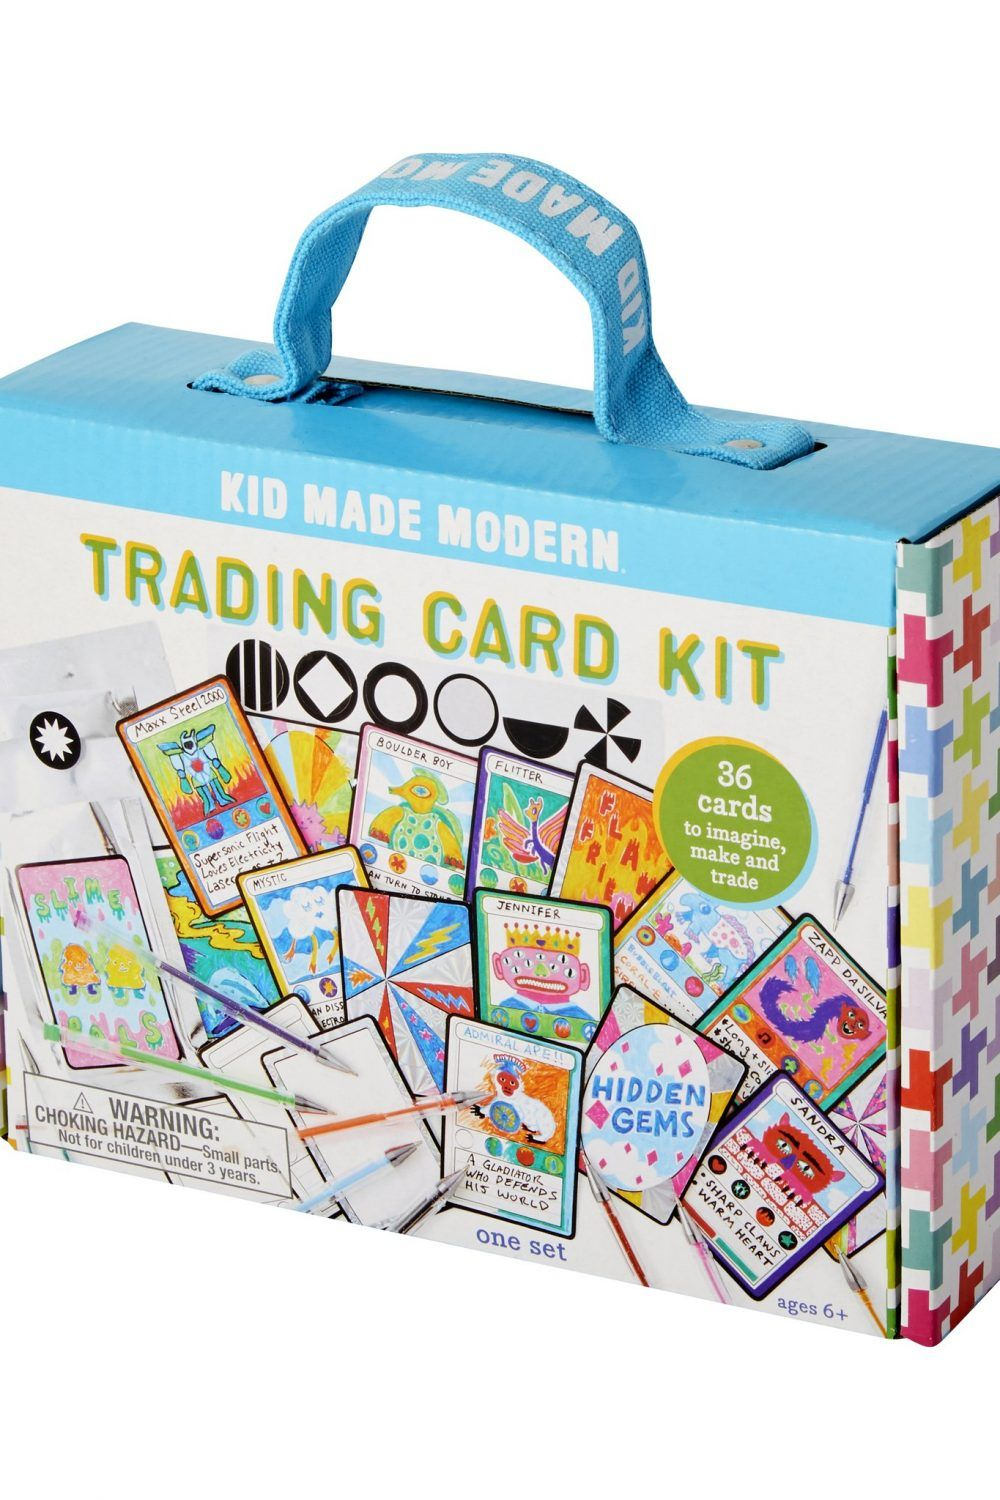 Kid Made Modern Trading Card Kit Perfect Rainy Day Or Play Date Activity Makes A Great Gift Ages 6 And Up Includes 36 Tradi Card Kit Cards Trading Cards